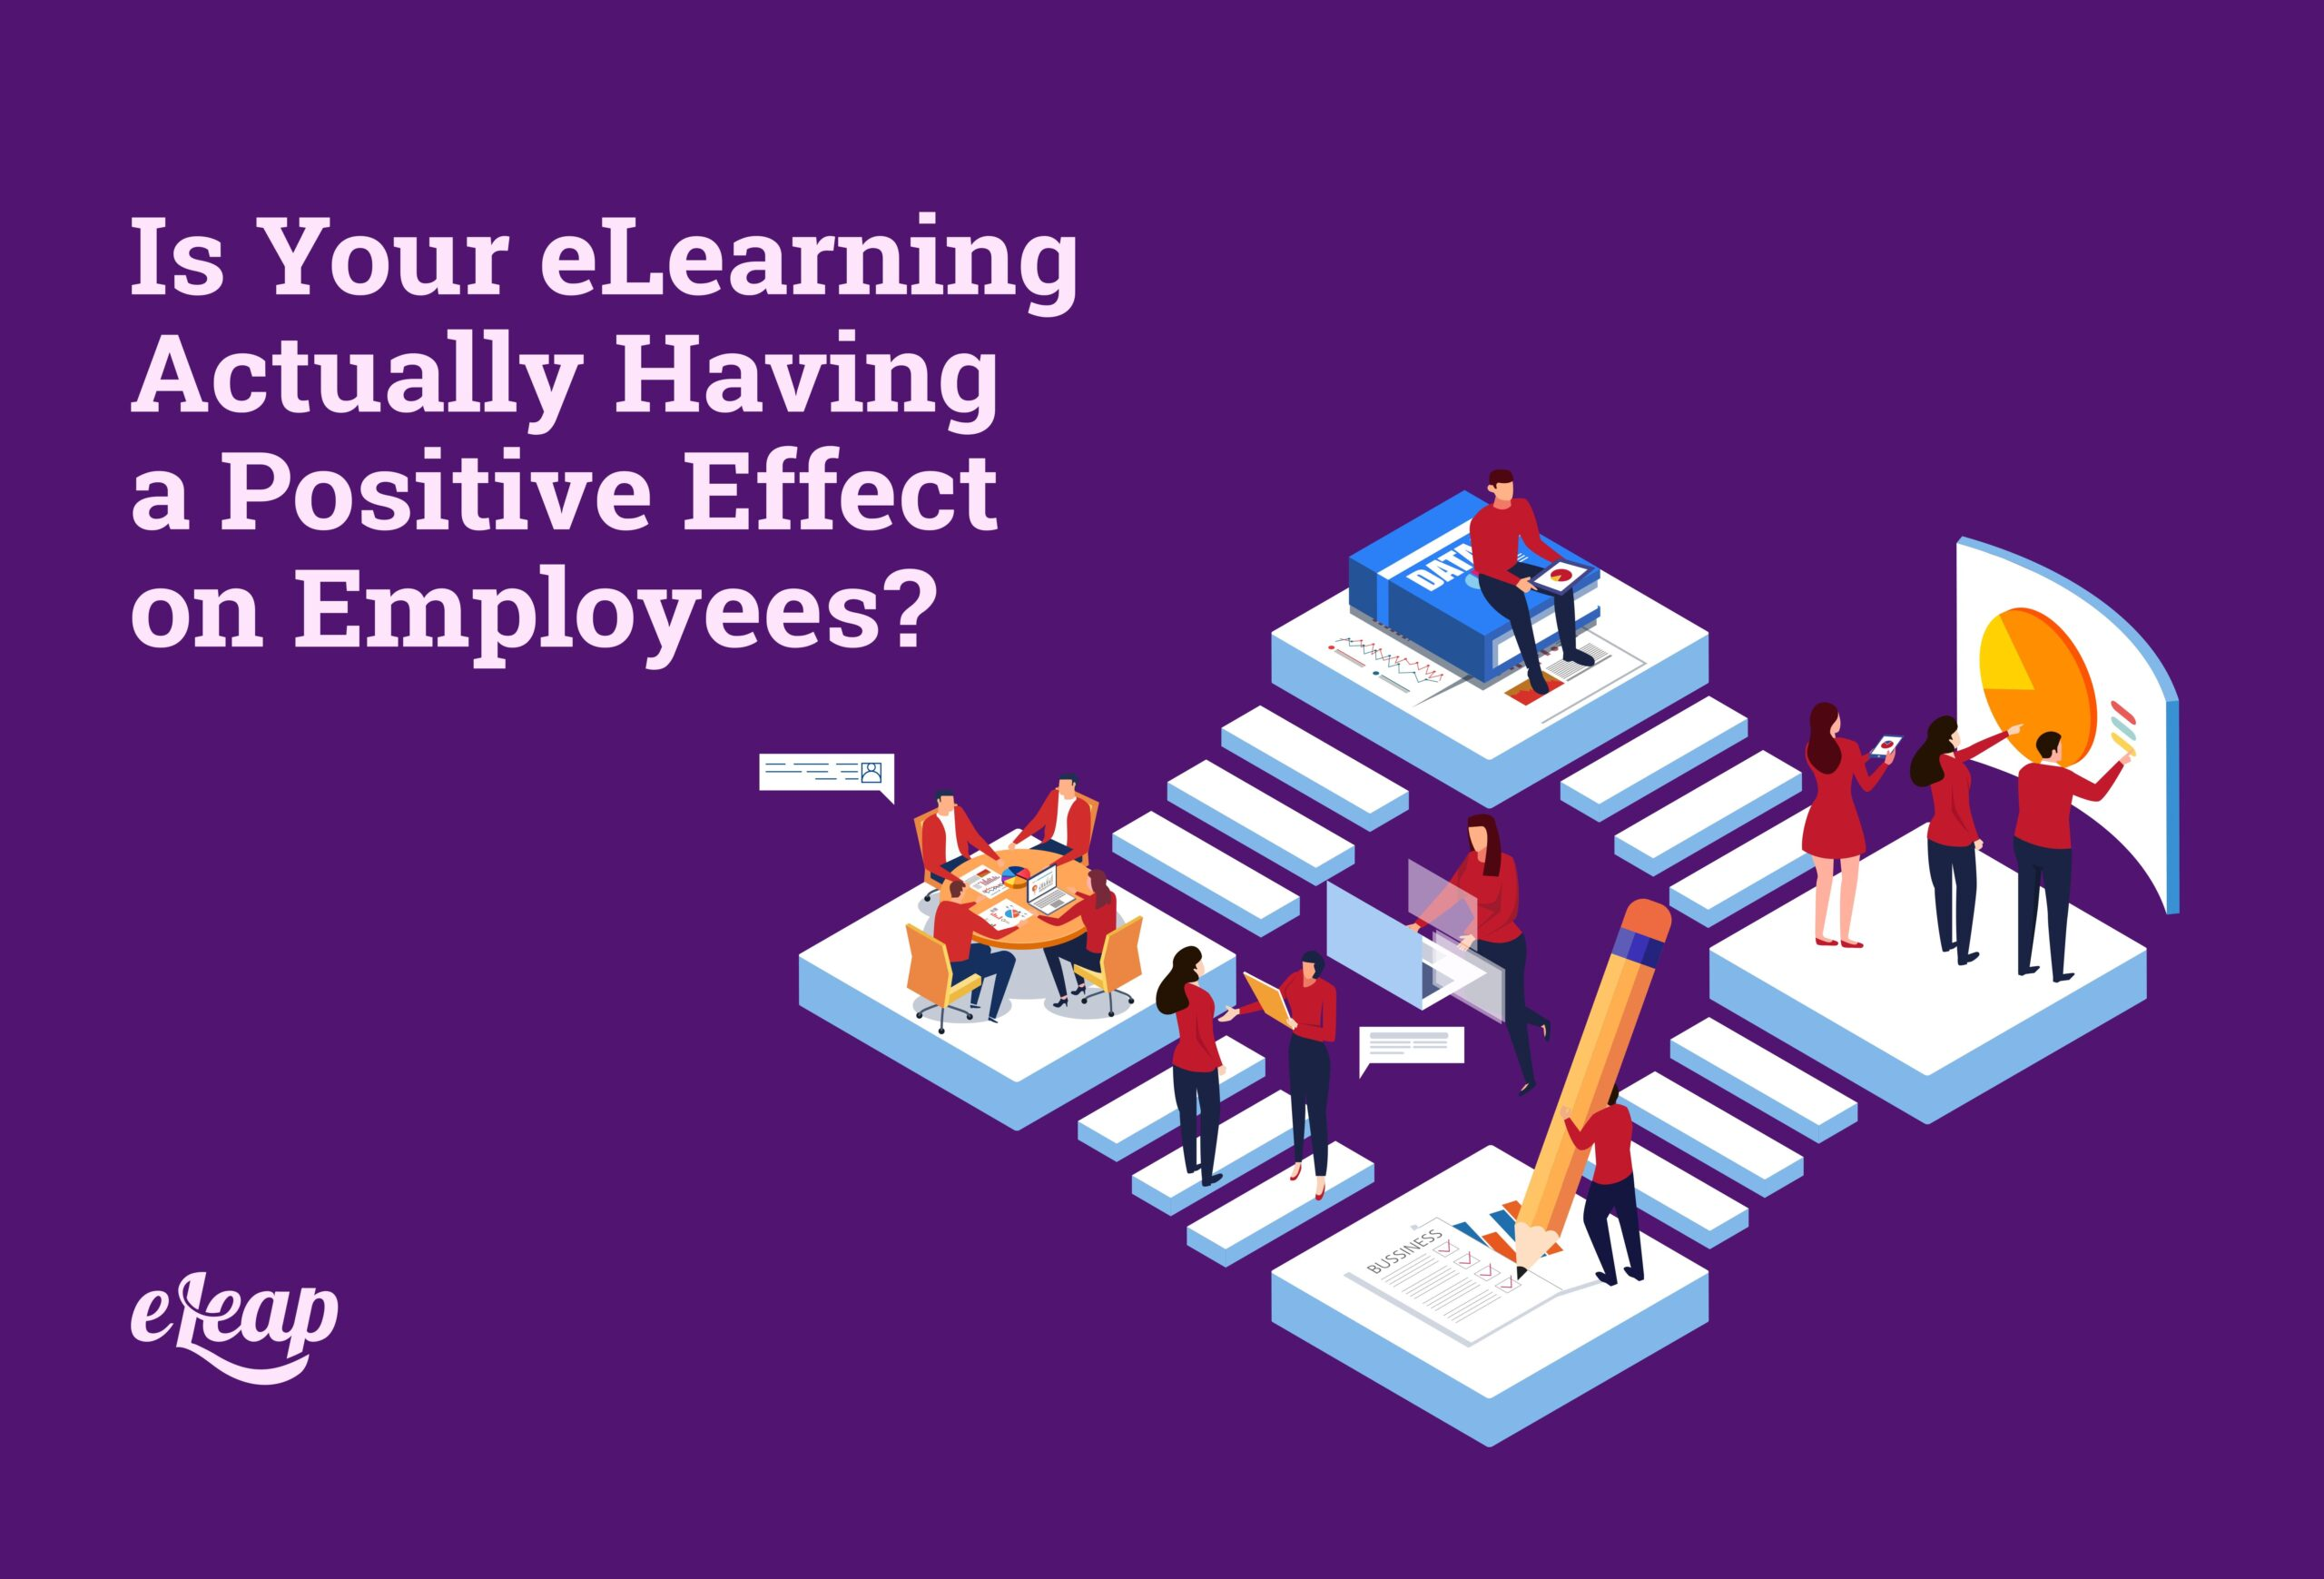 Is Your eLearning Actually Having a Positive Effect on Employees?